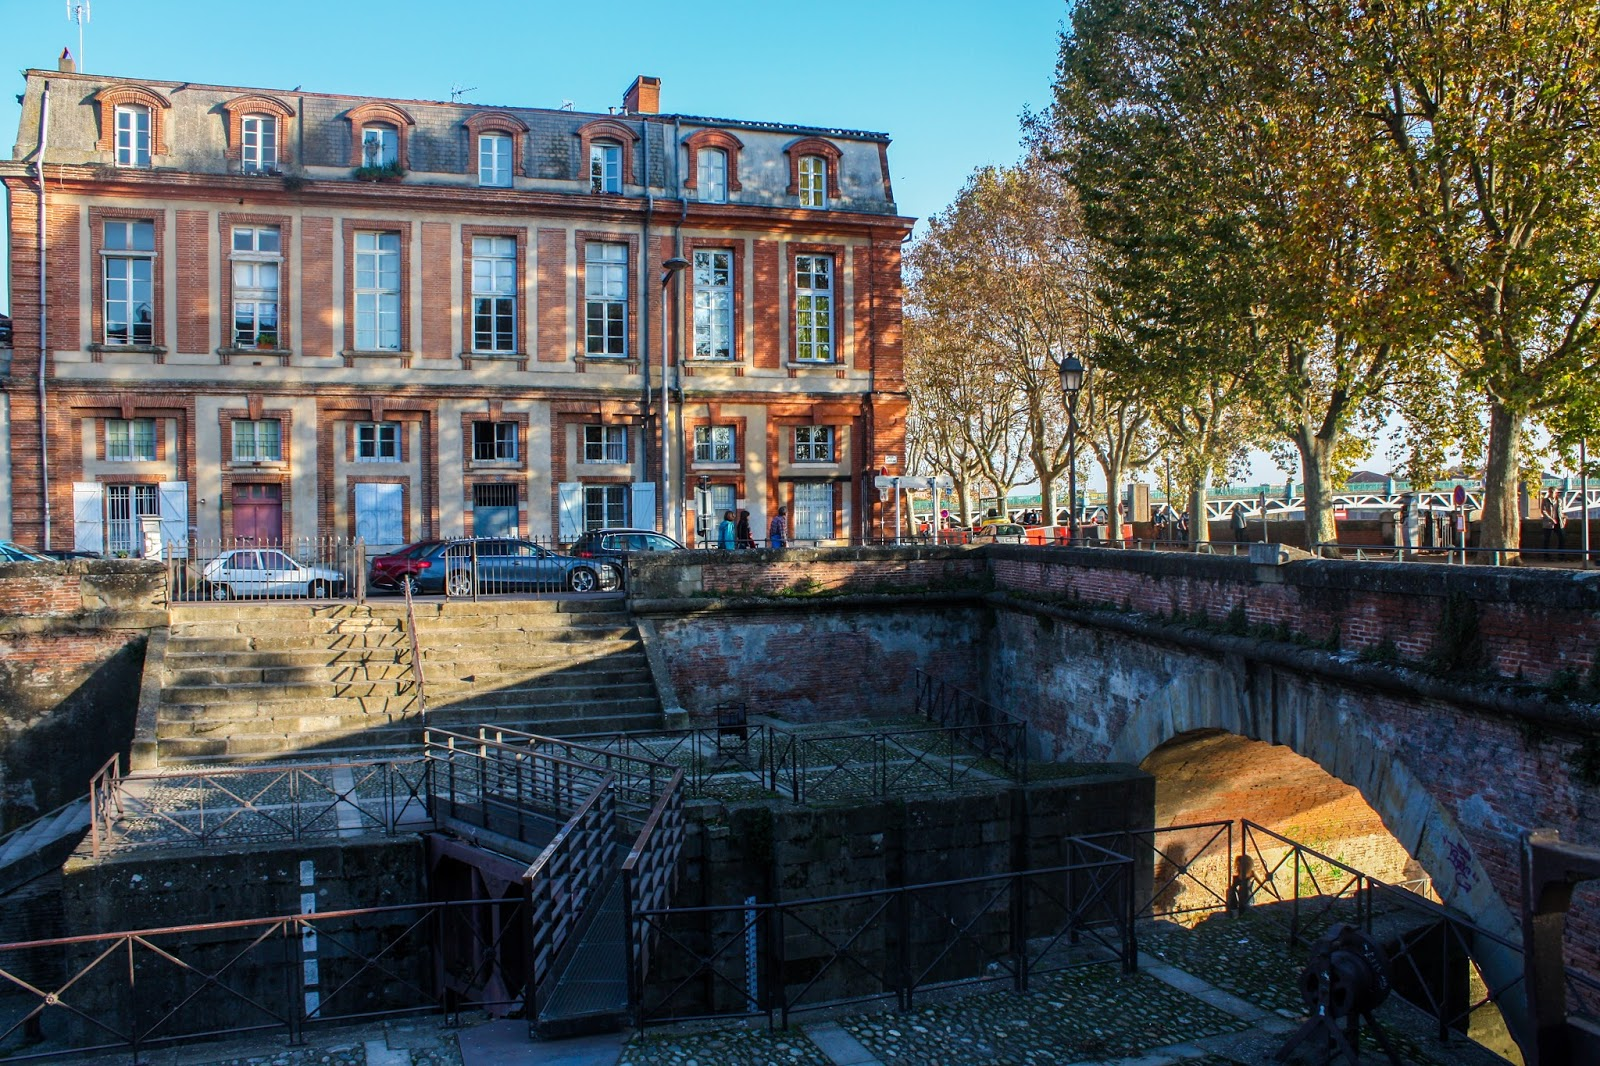 toulouse canal de brienne